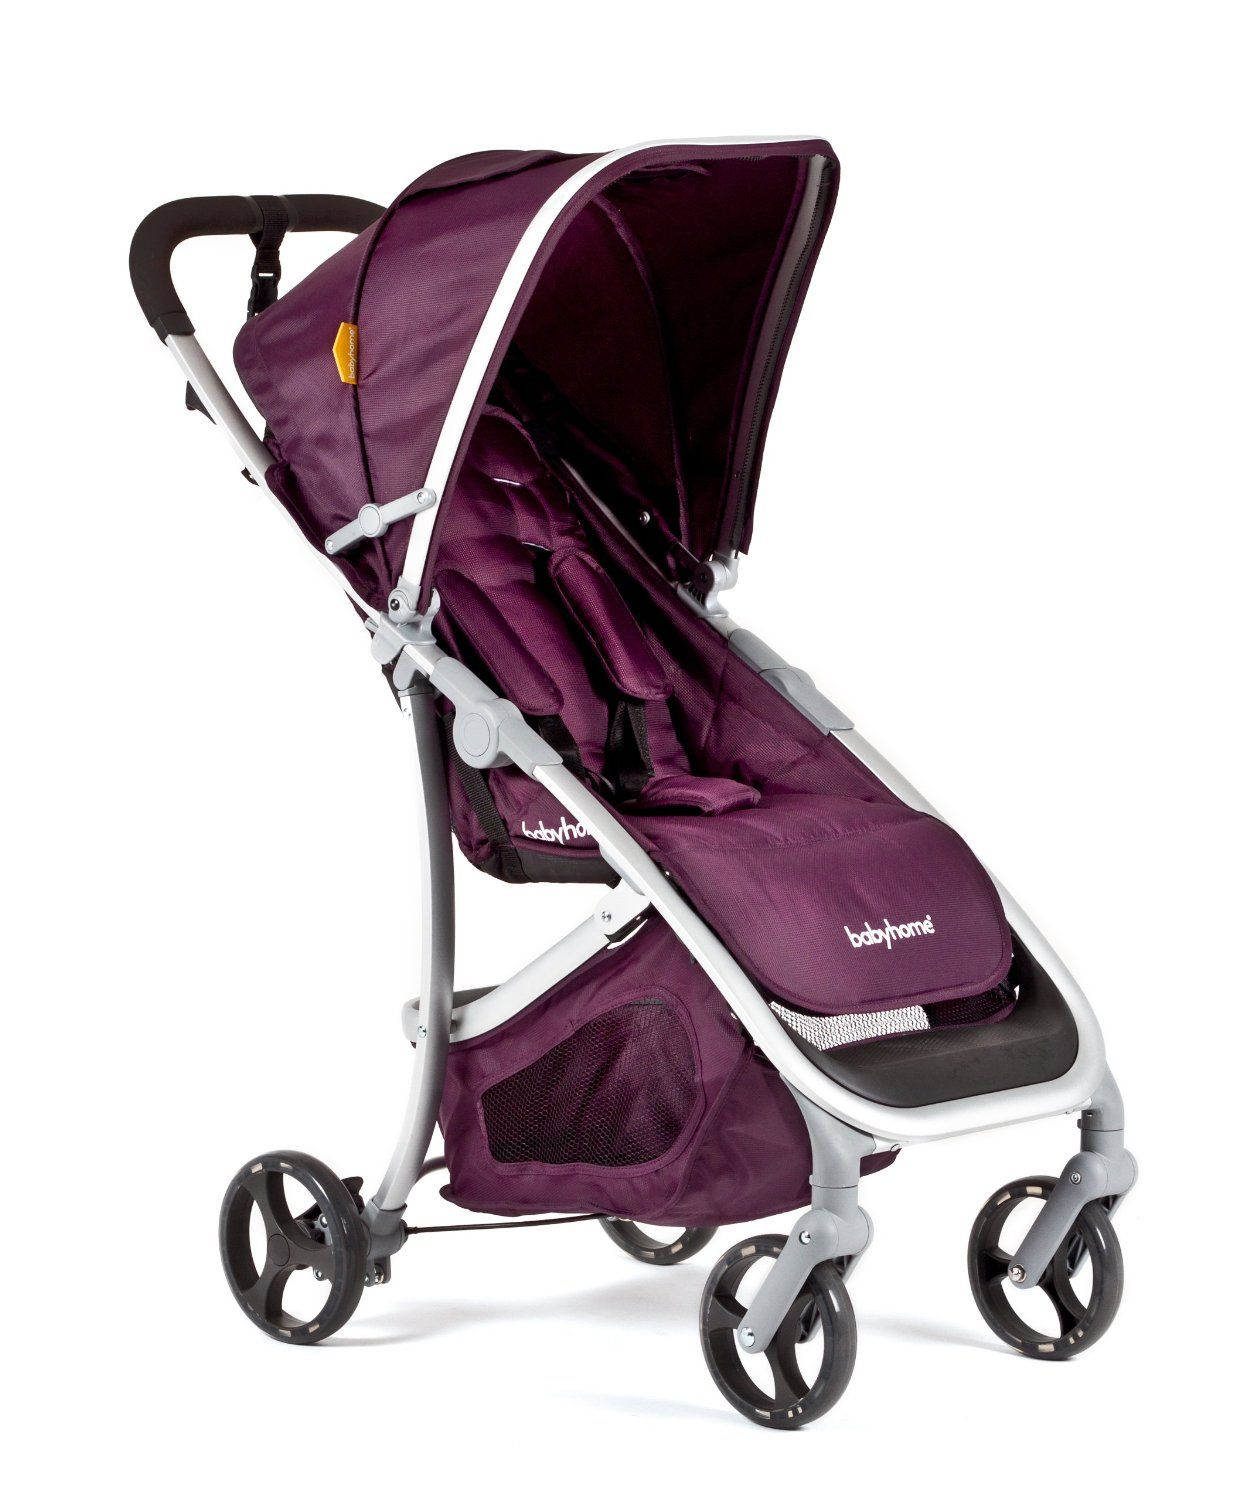 Baby Home Emotion Stroller Purple Baby strollers